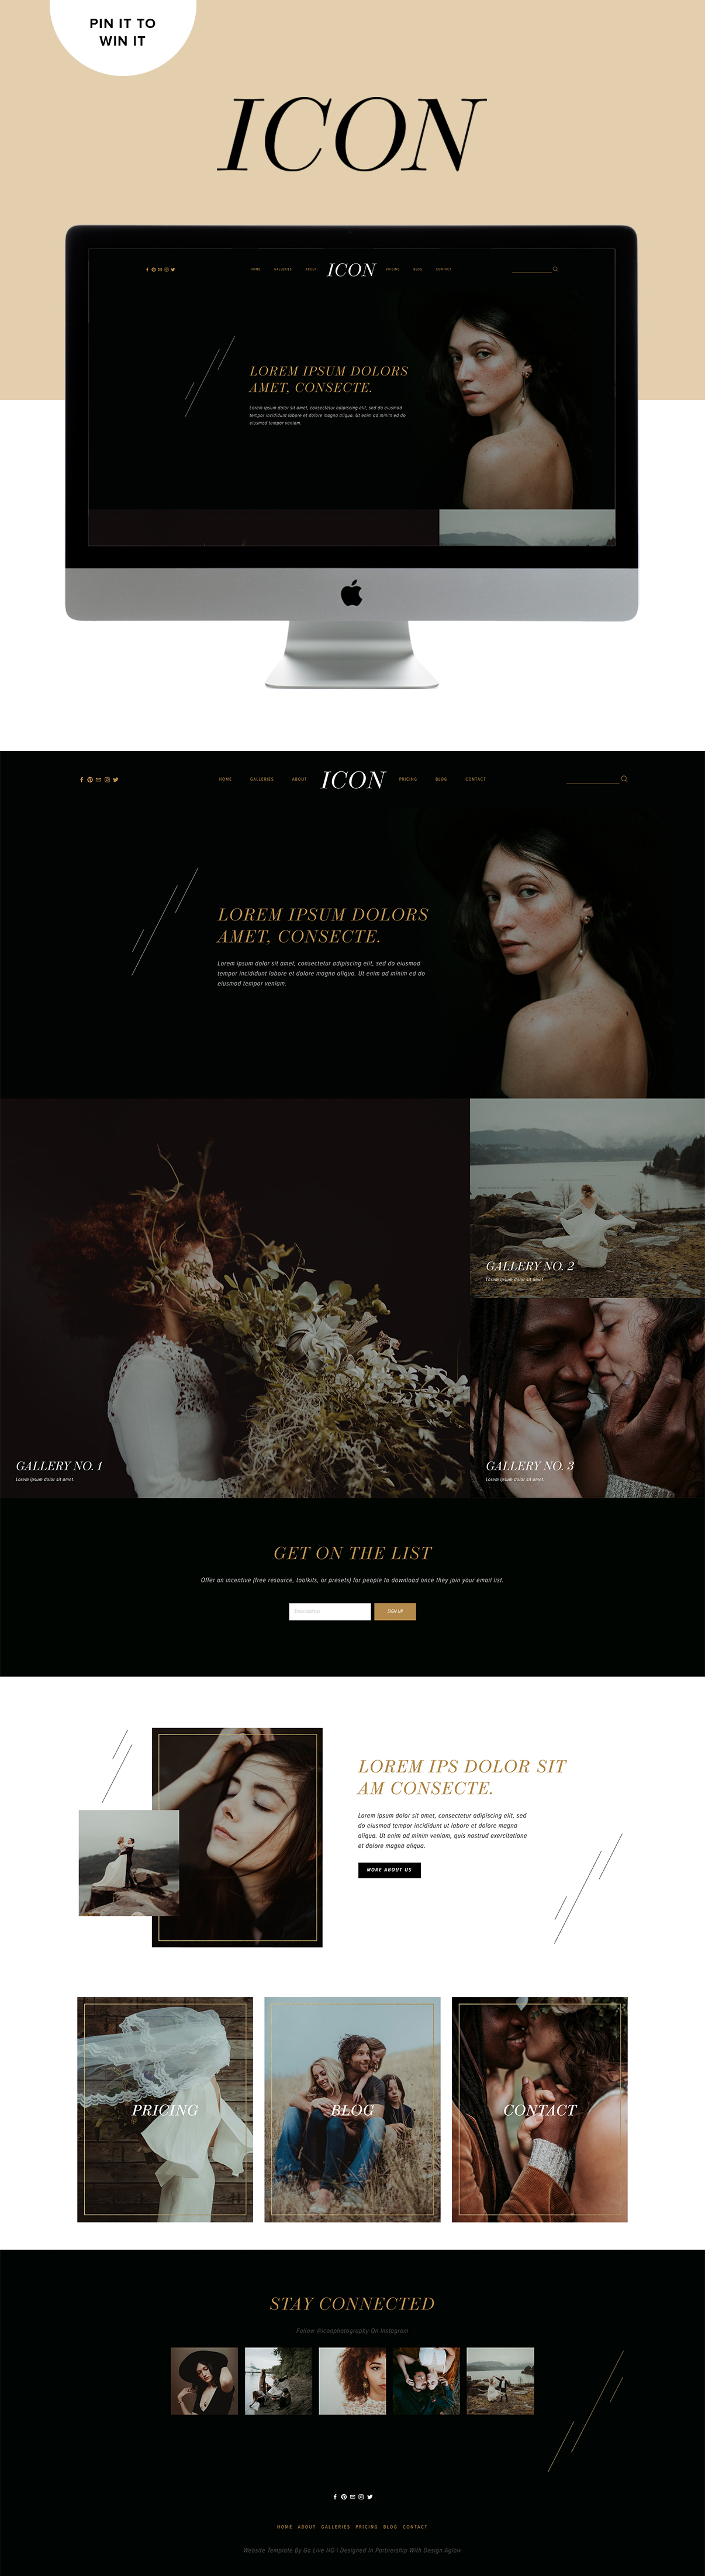 Dark, moody, modern website design for photographers | Design By GoLive in partnership with Design Aglow